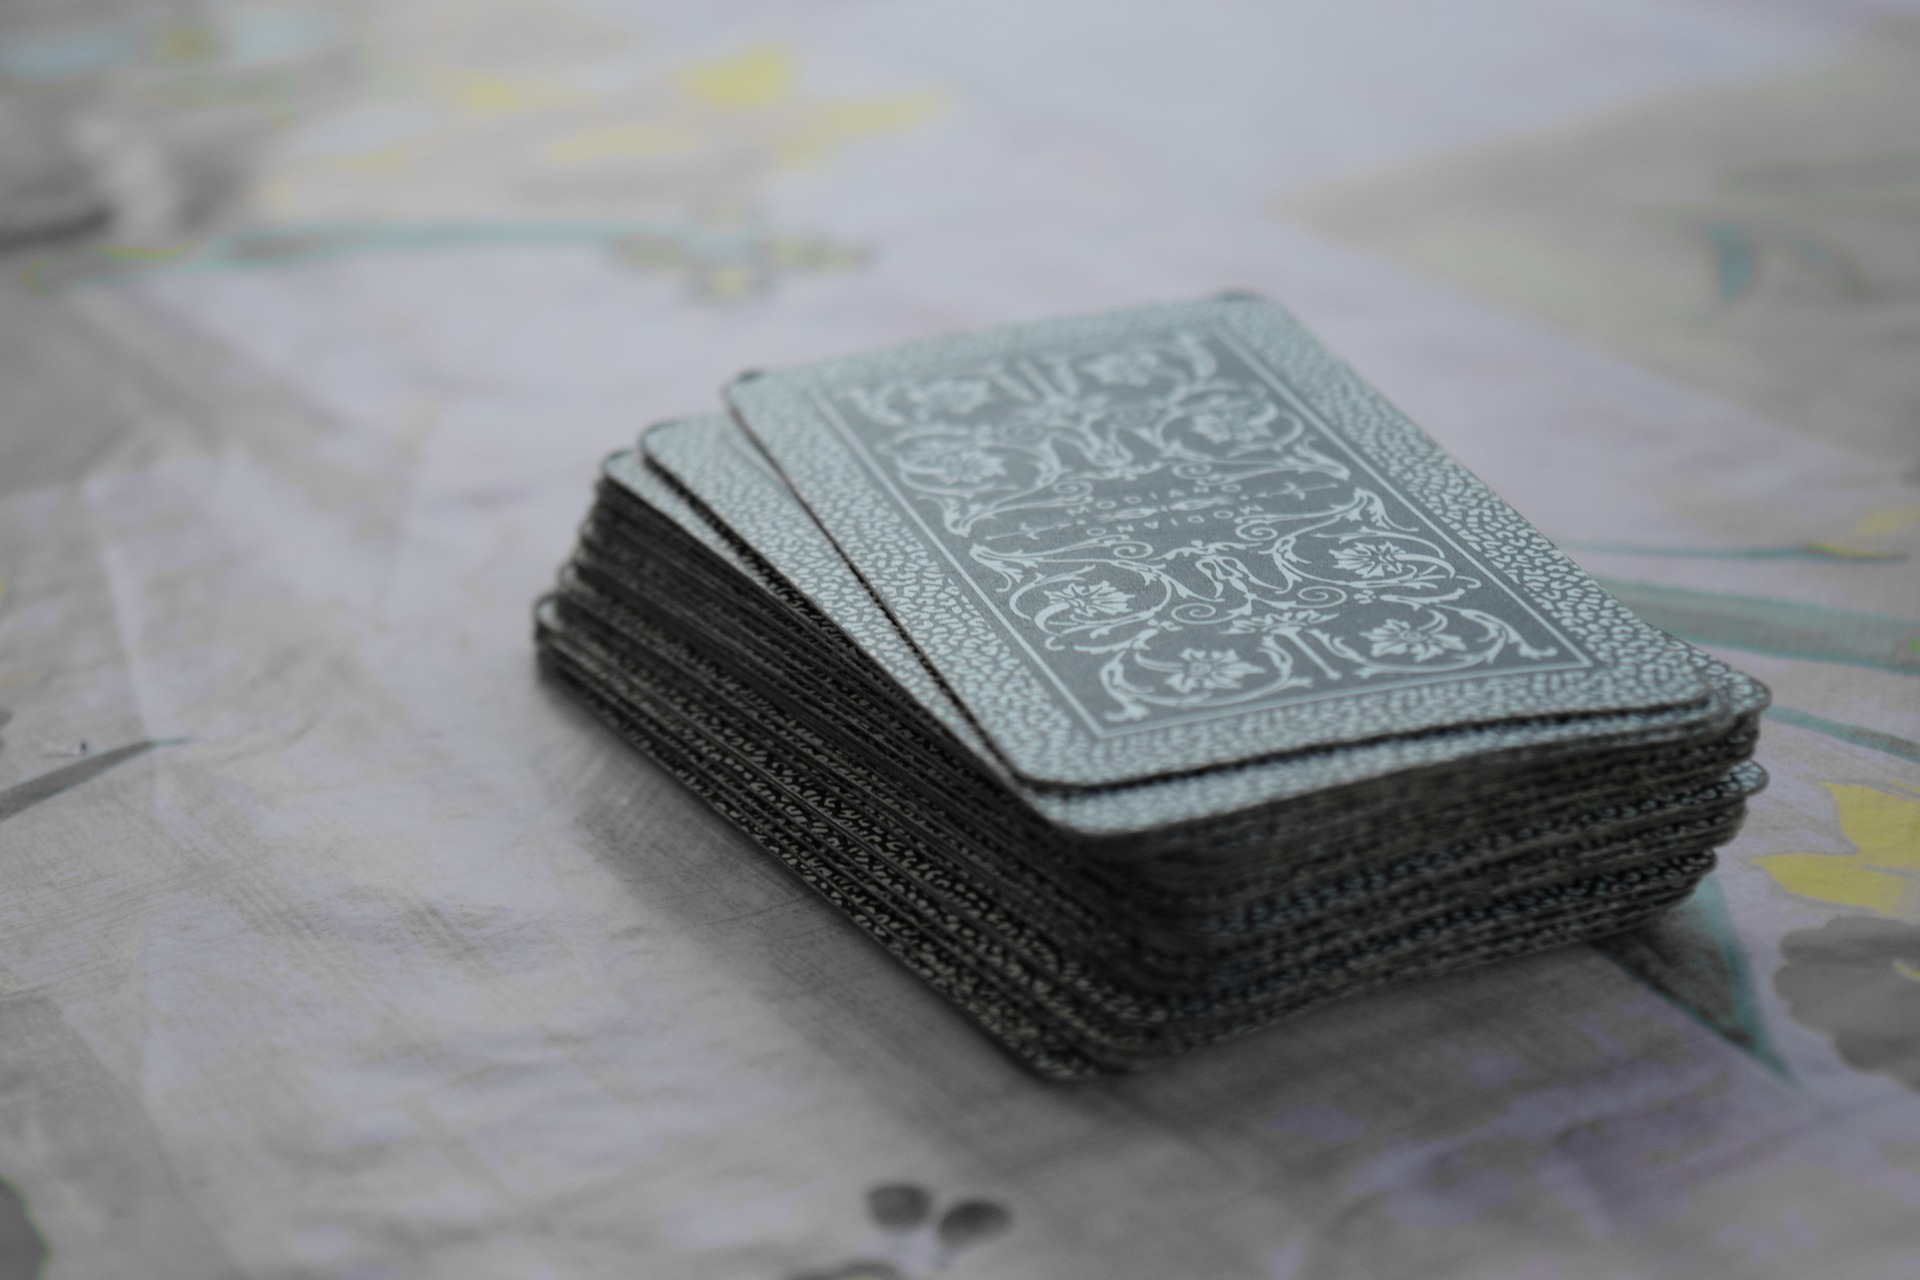 deck-of-cards-1755797_1920